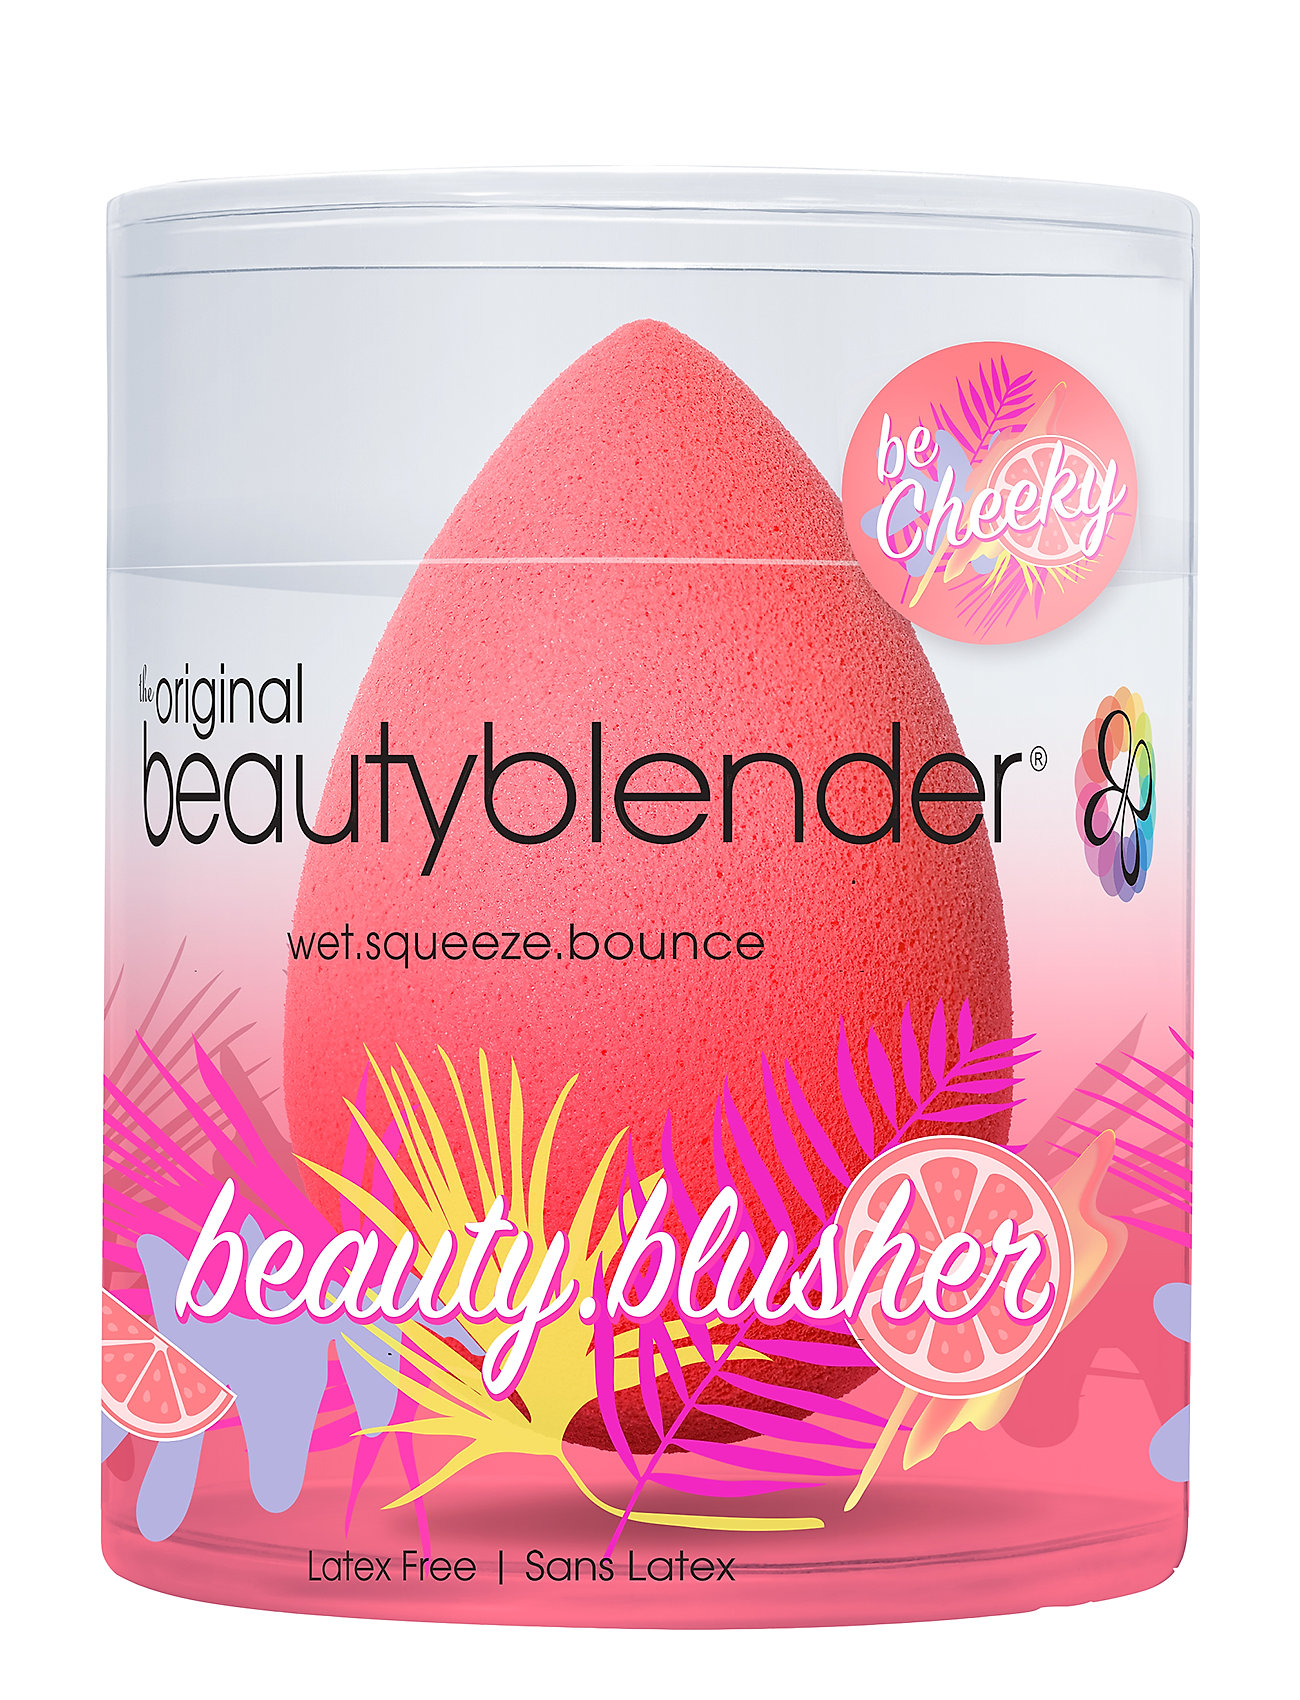 Image of Beautyblender Beauty.Blusher Cheeky Beauty WOMEN Makeup Makeup Brushes Sponges & Applicators Nude Beautyblender (3416354279)